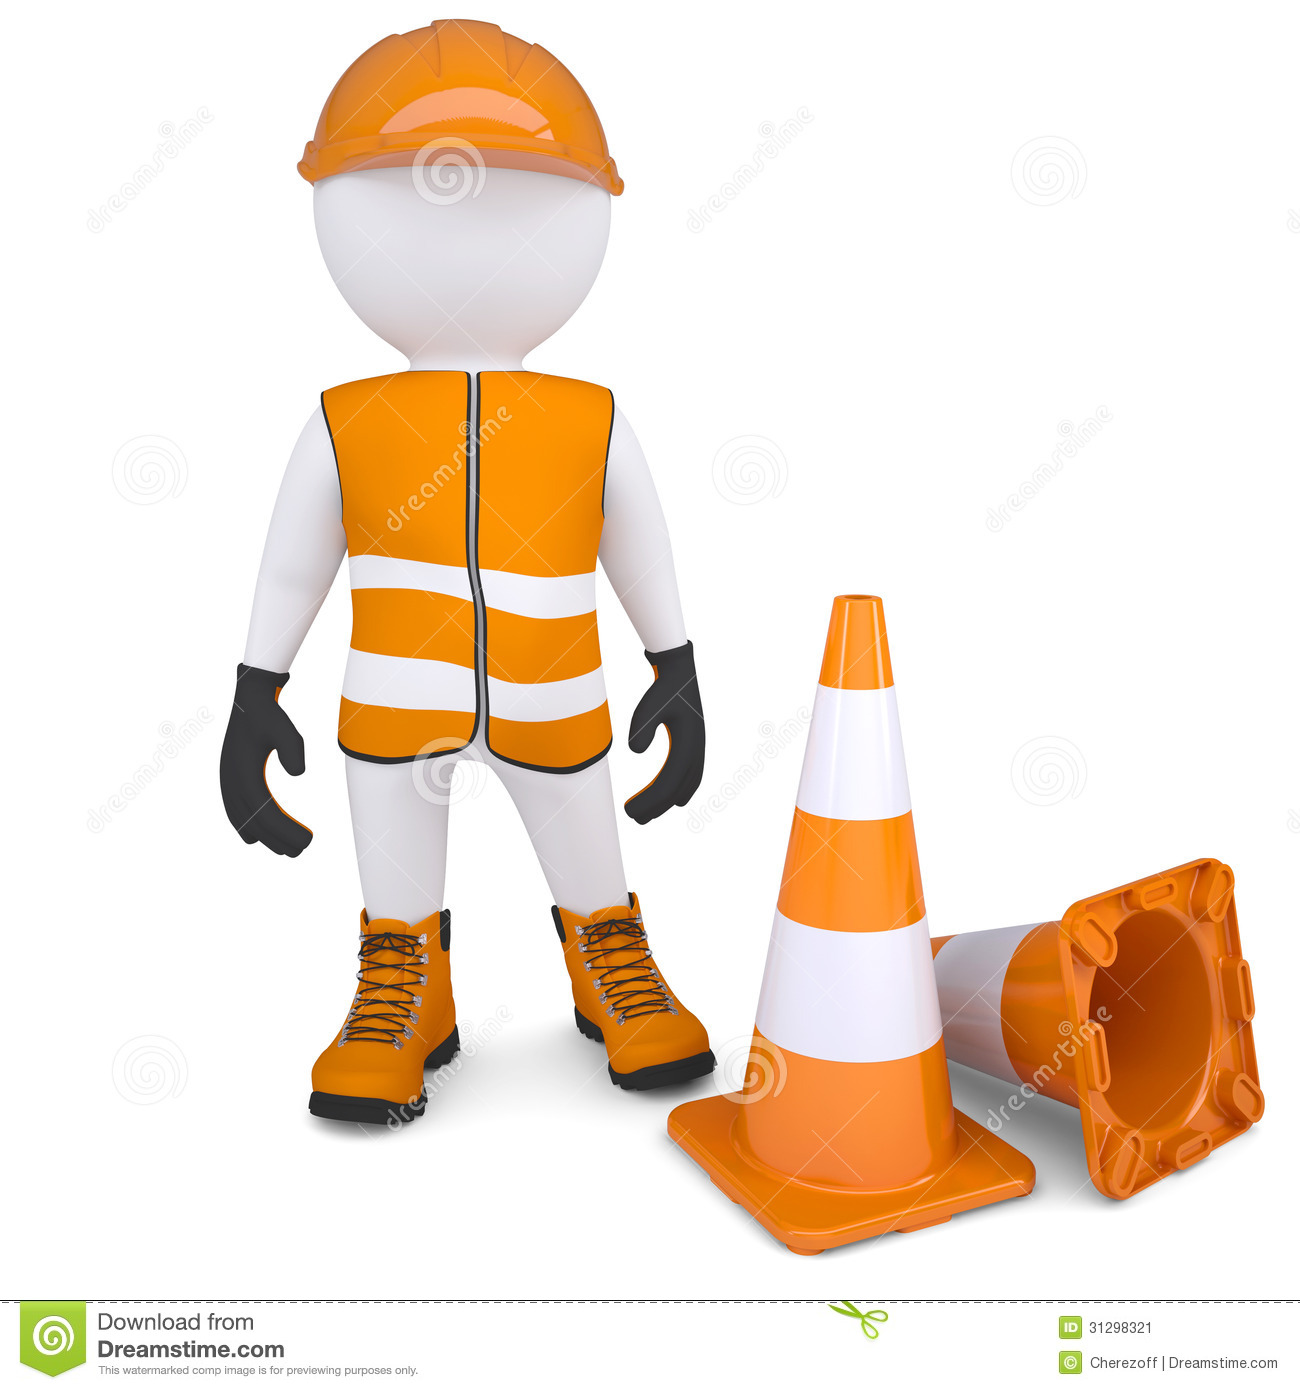 3d man in overalls beside traffic cones. render on a white background. Under Construction Signs